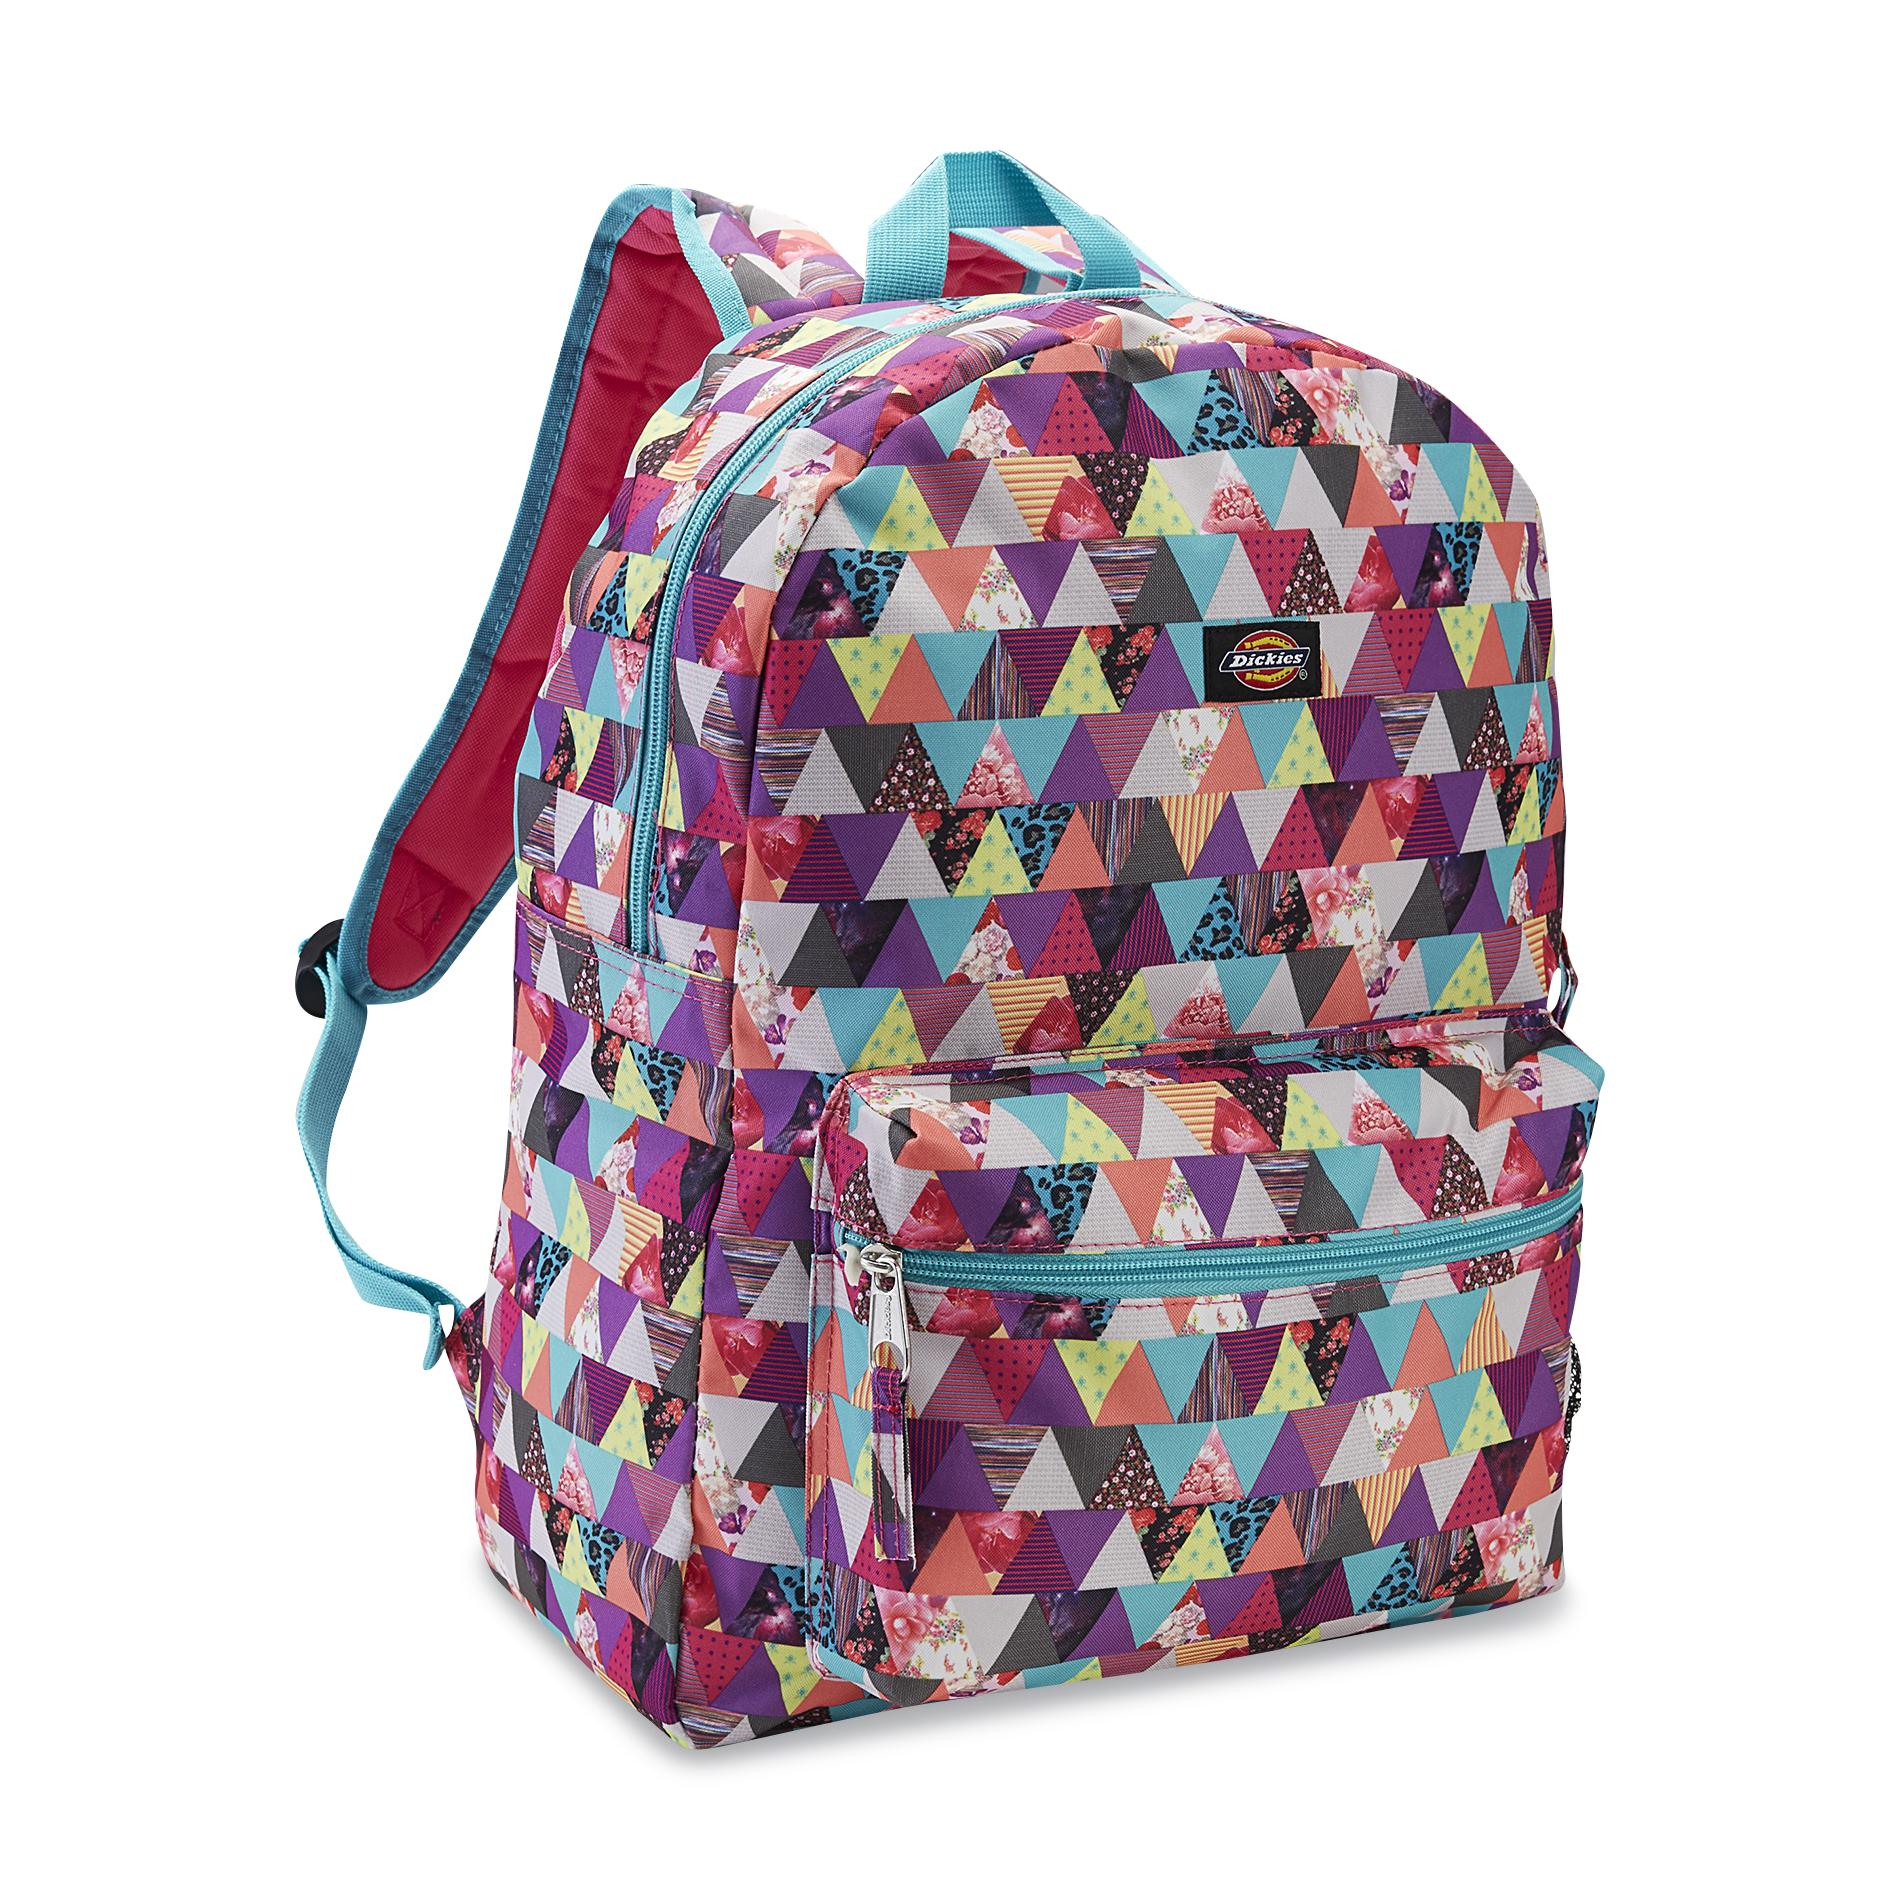 Dickies Girl's Student Backpack - Patchwork Triangle